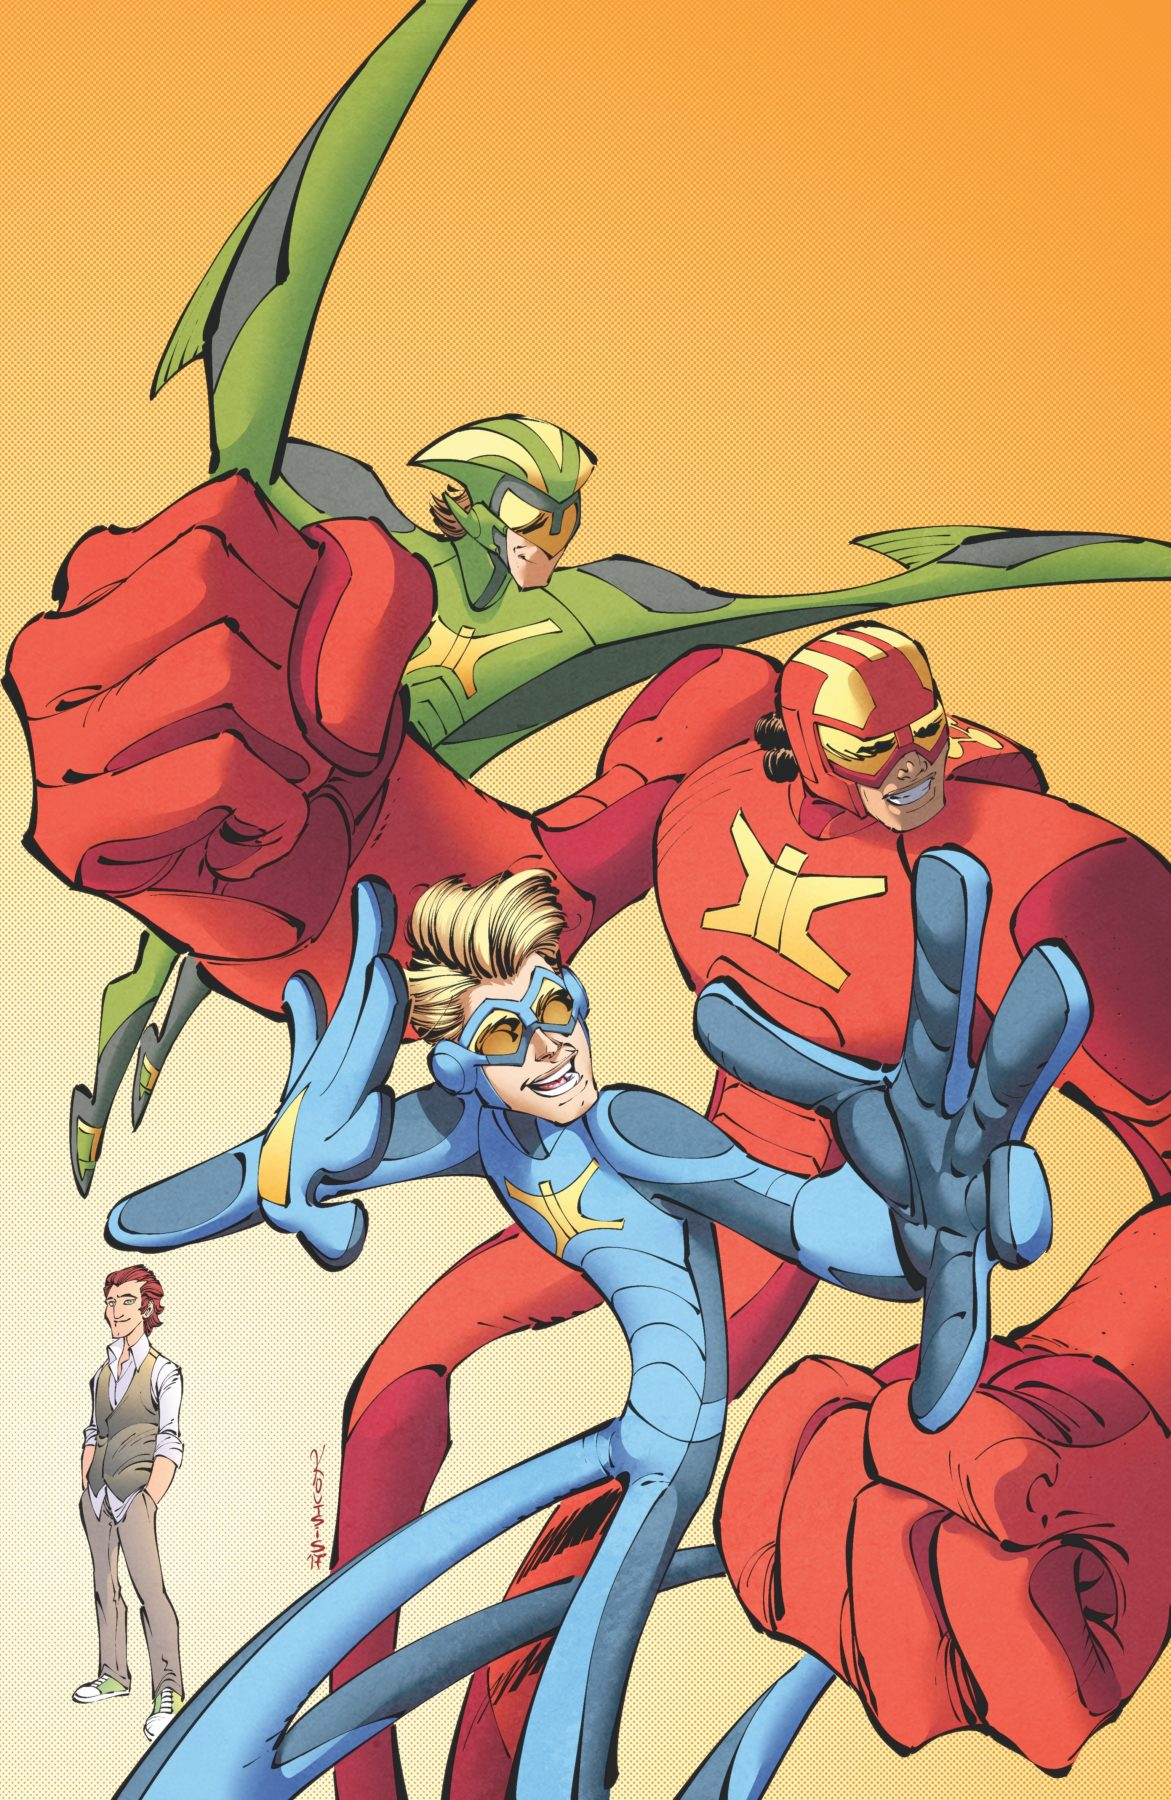 Stretch Armstrong expands into comic books with IDW